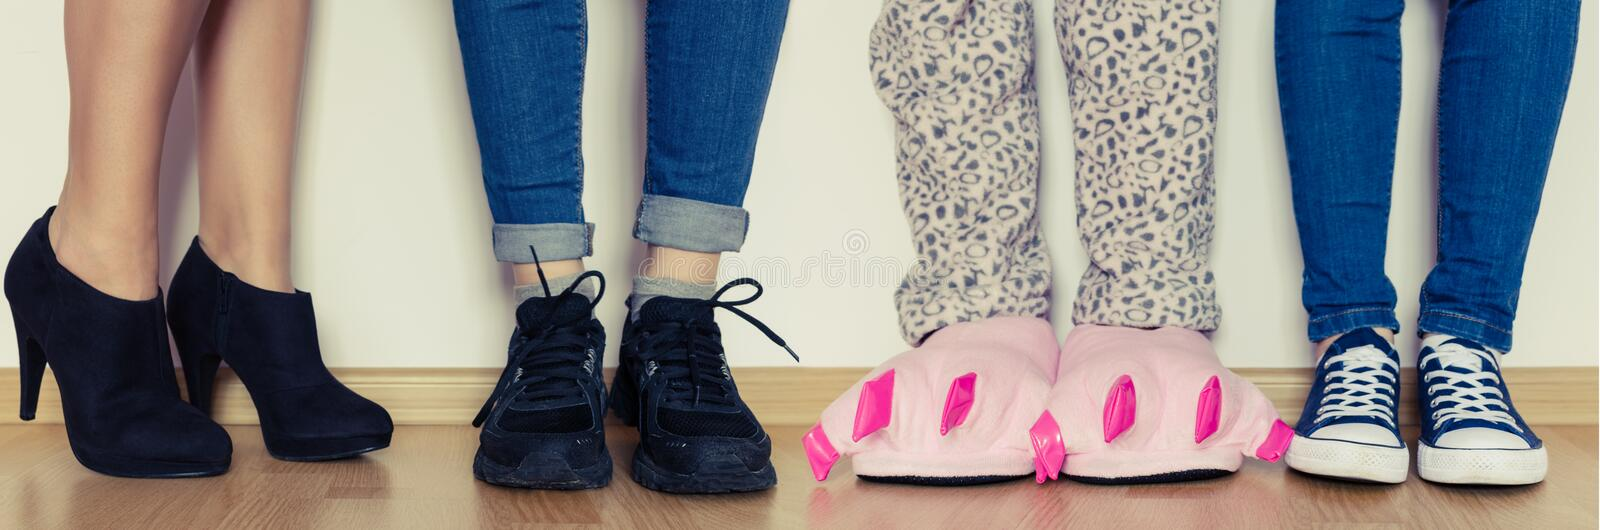 Female legs in slippers and different kind of shoes stock image